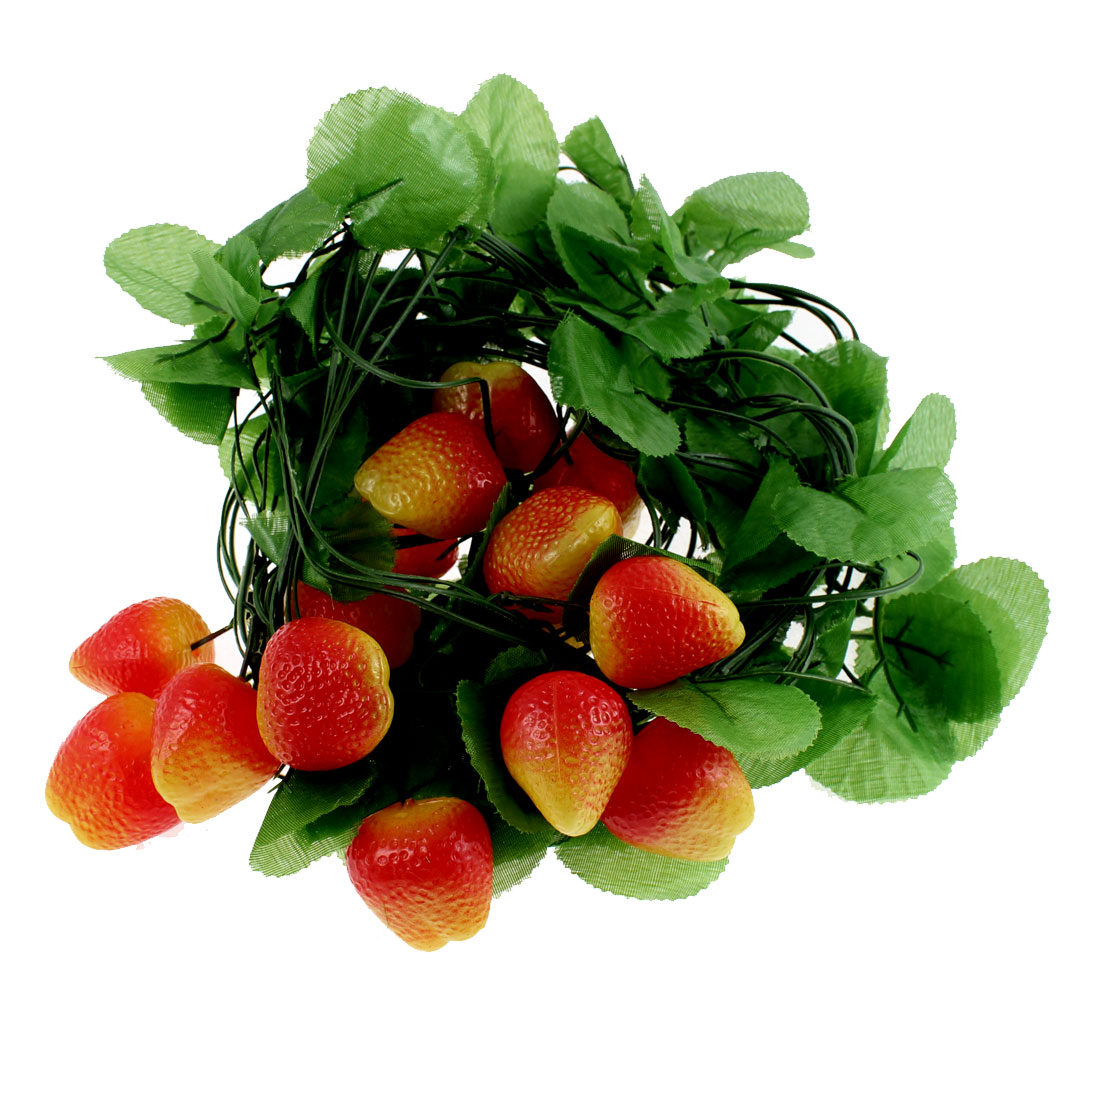 Artificial Hanging Fruit Foliage Ivy Strawberry Vine 5 Pcs